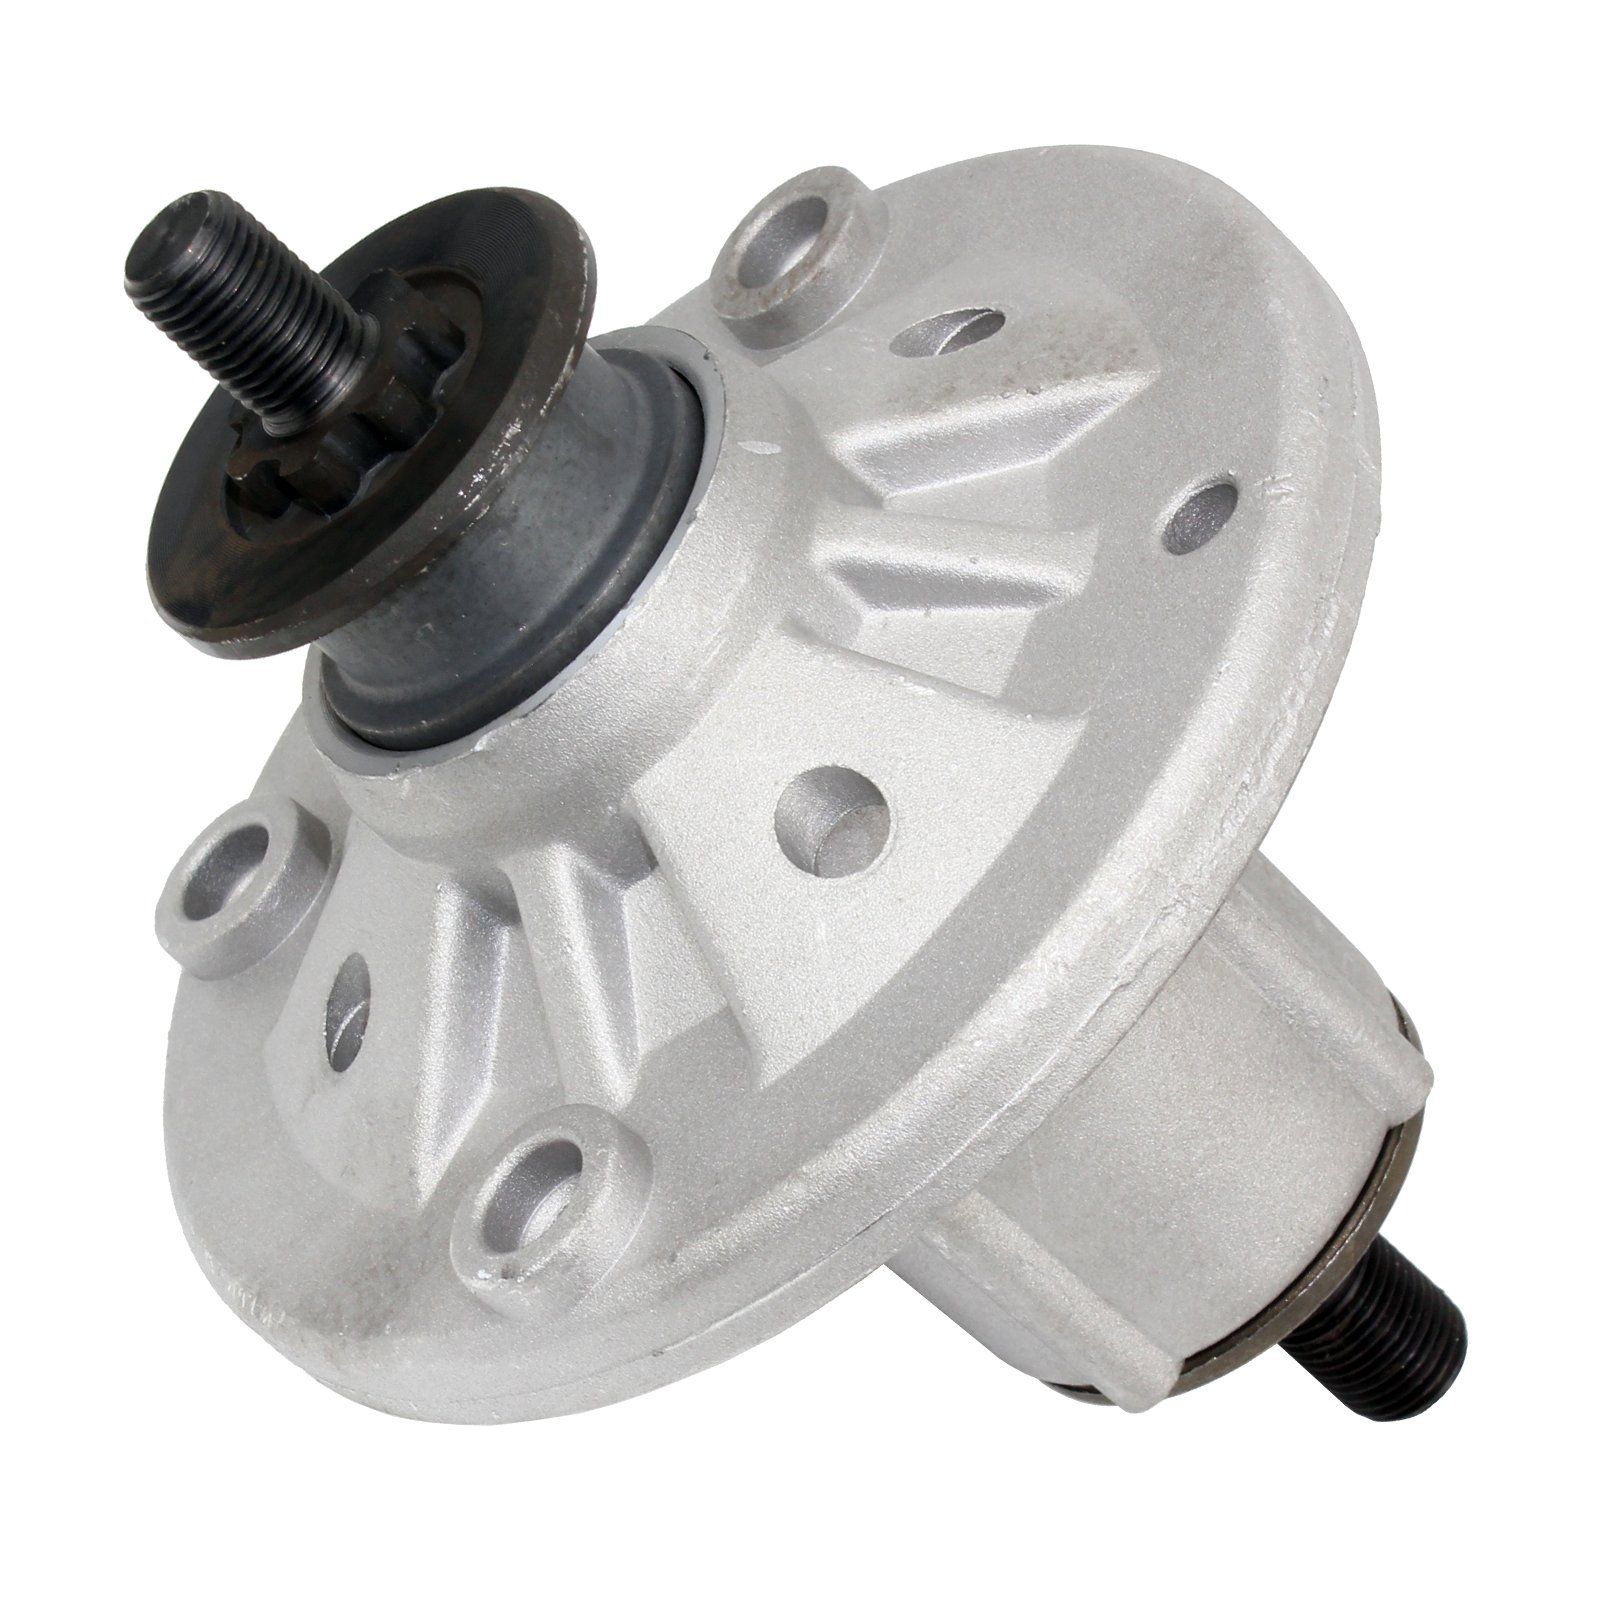 CALTRIC SPINDLE ASSEMBLY FITS John Deere X300 X300R X304 Z225 Z245 EZ Mowers